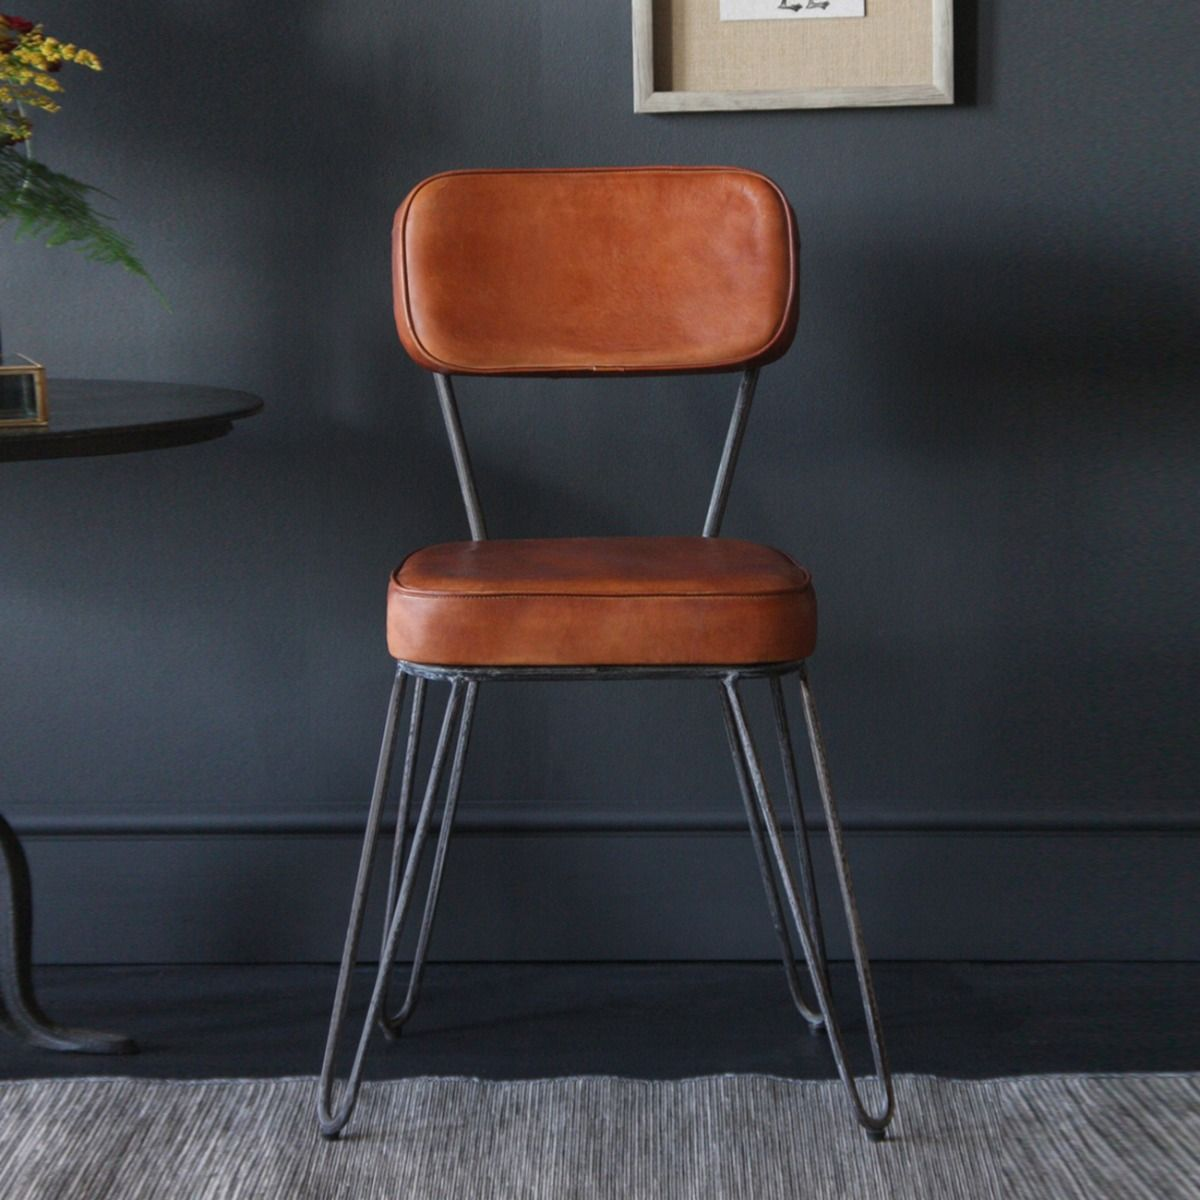 Hairpin Industrial Dining Chair Living Room In 2019 Vintage